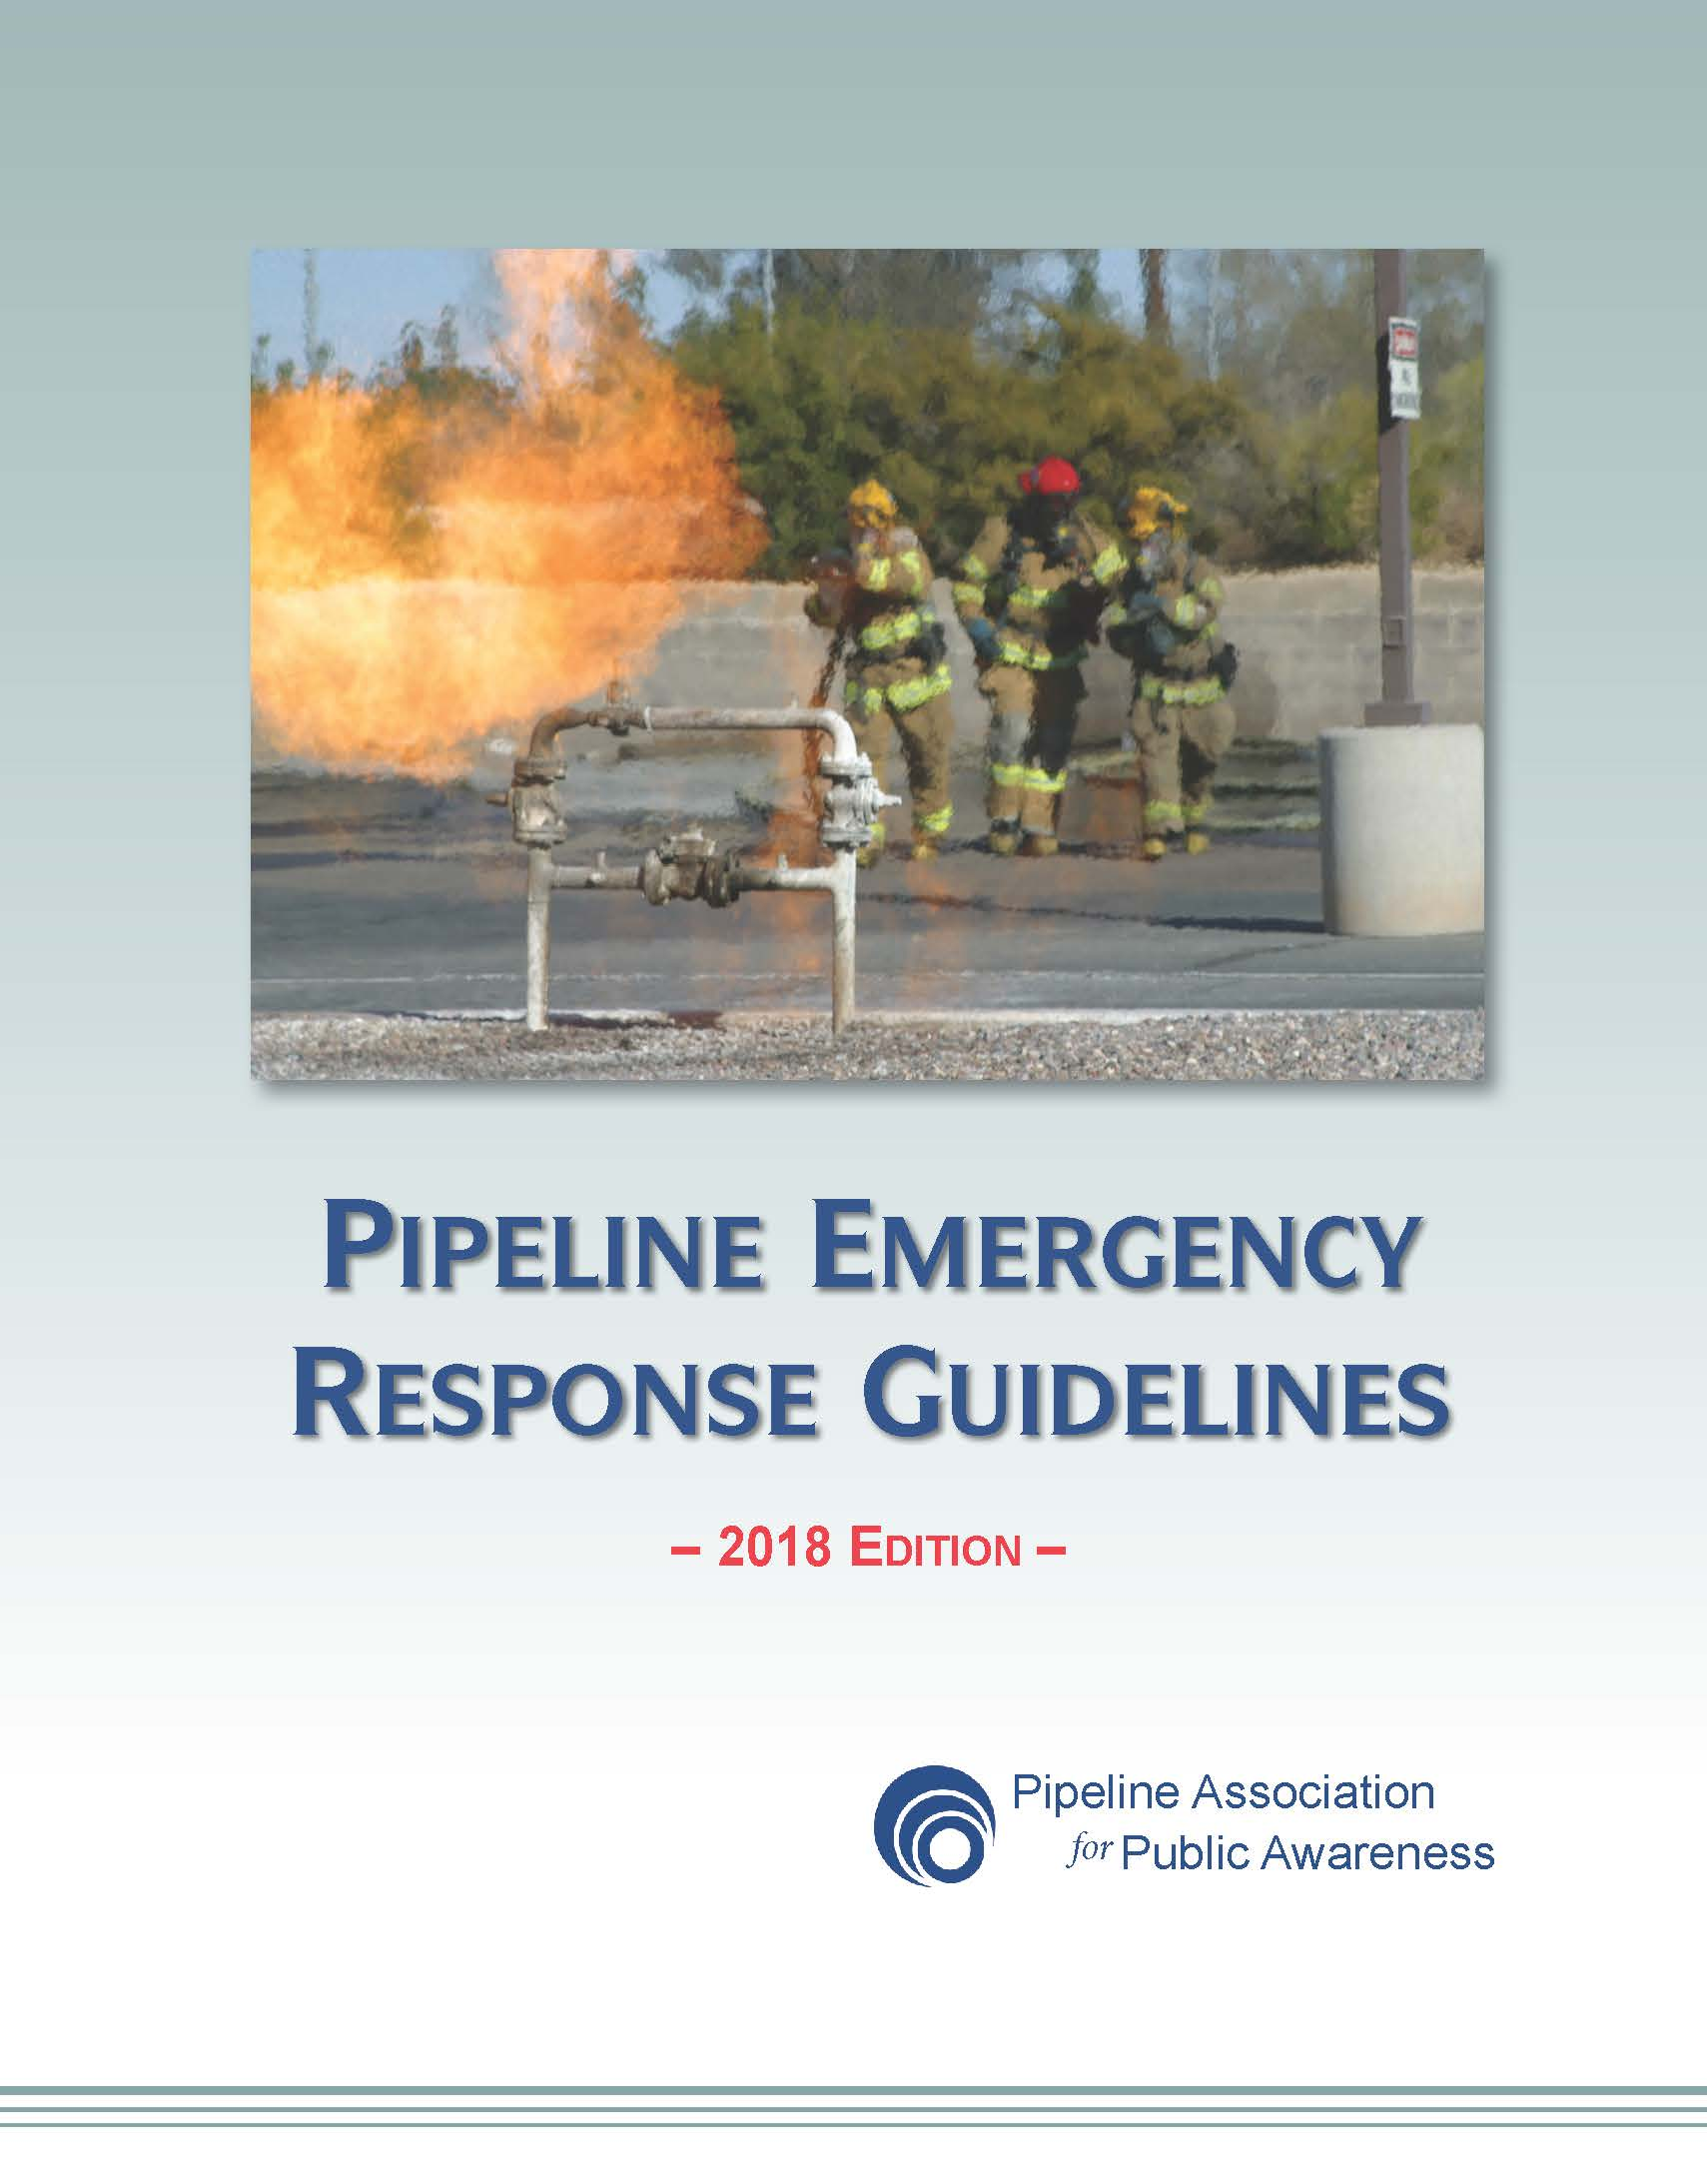 Pipeline Emergency Response Guidelines